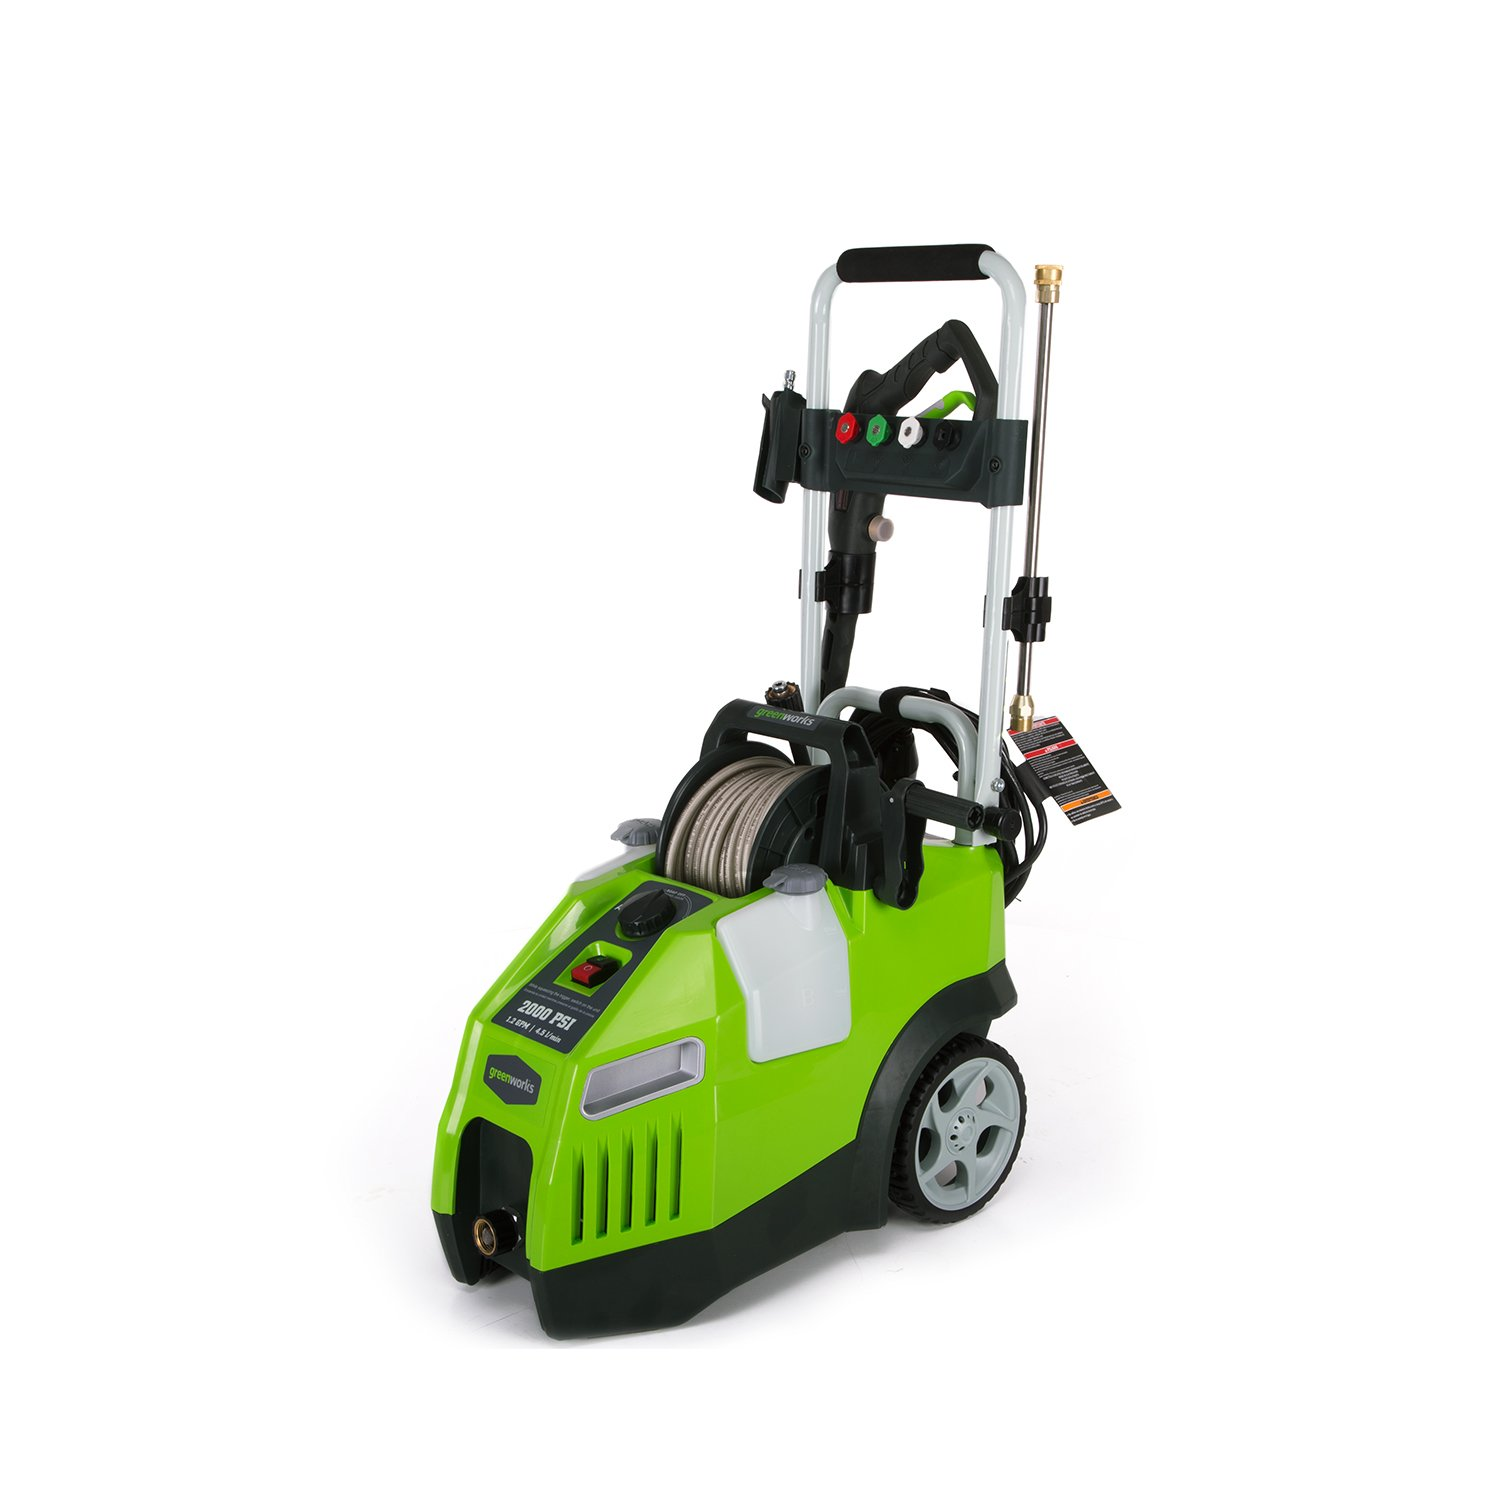 Greenworks 2000 PSI 13 Amp 1.2 GPM Pressure Washer with Hose Reel GPW2001 by Greenworks (Image #3)